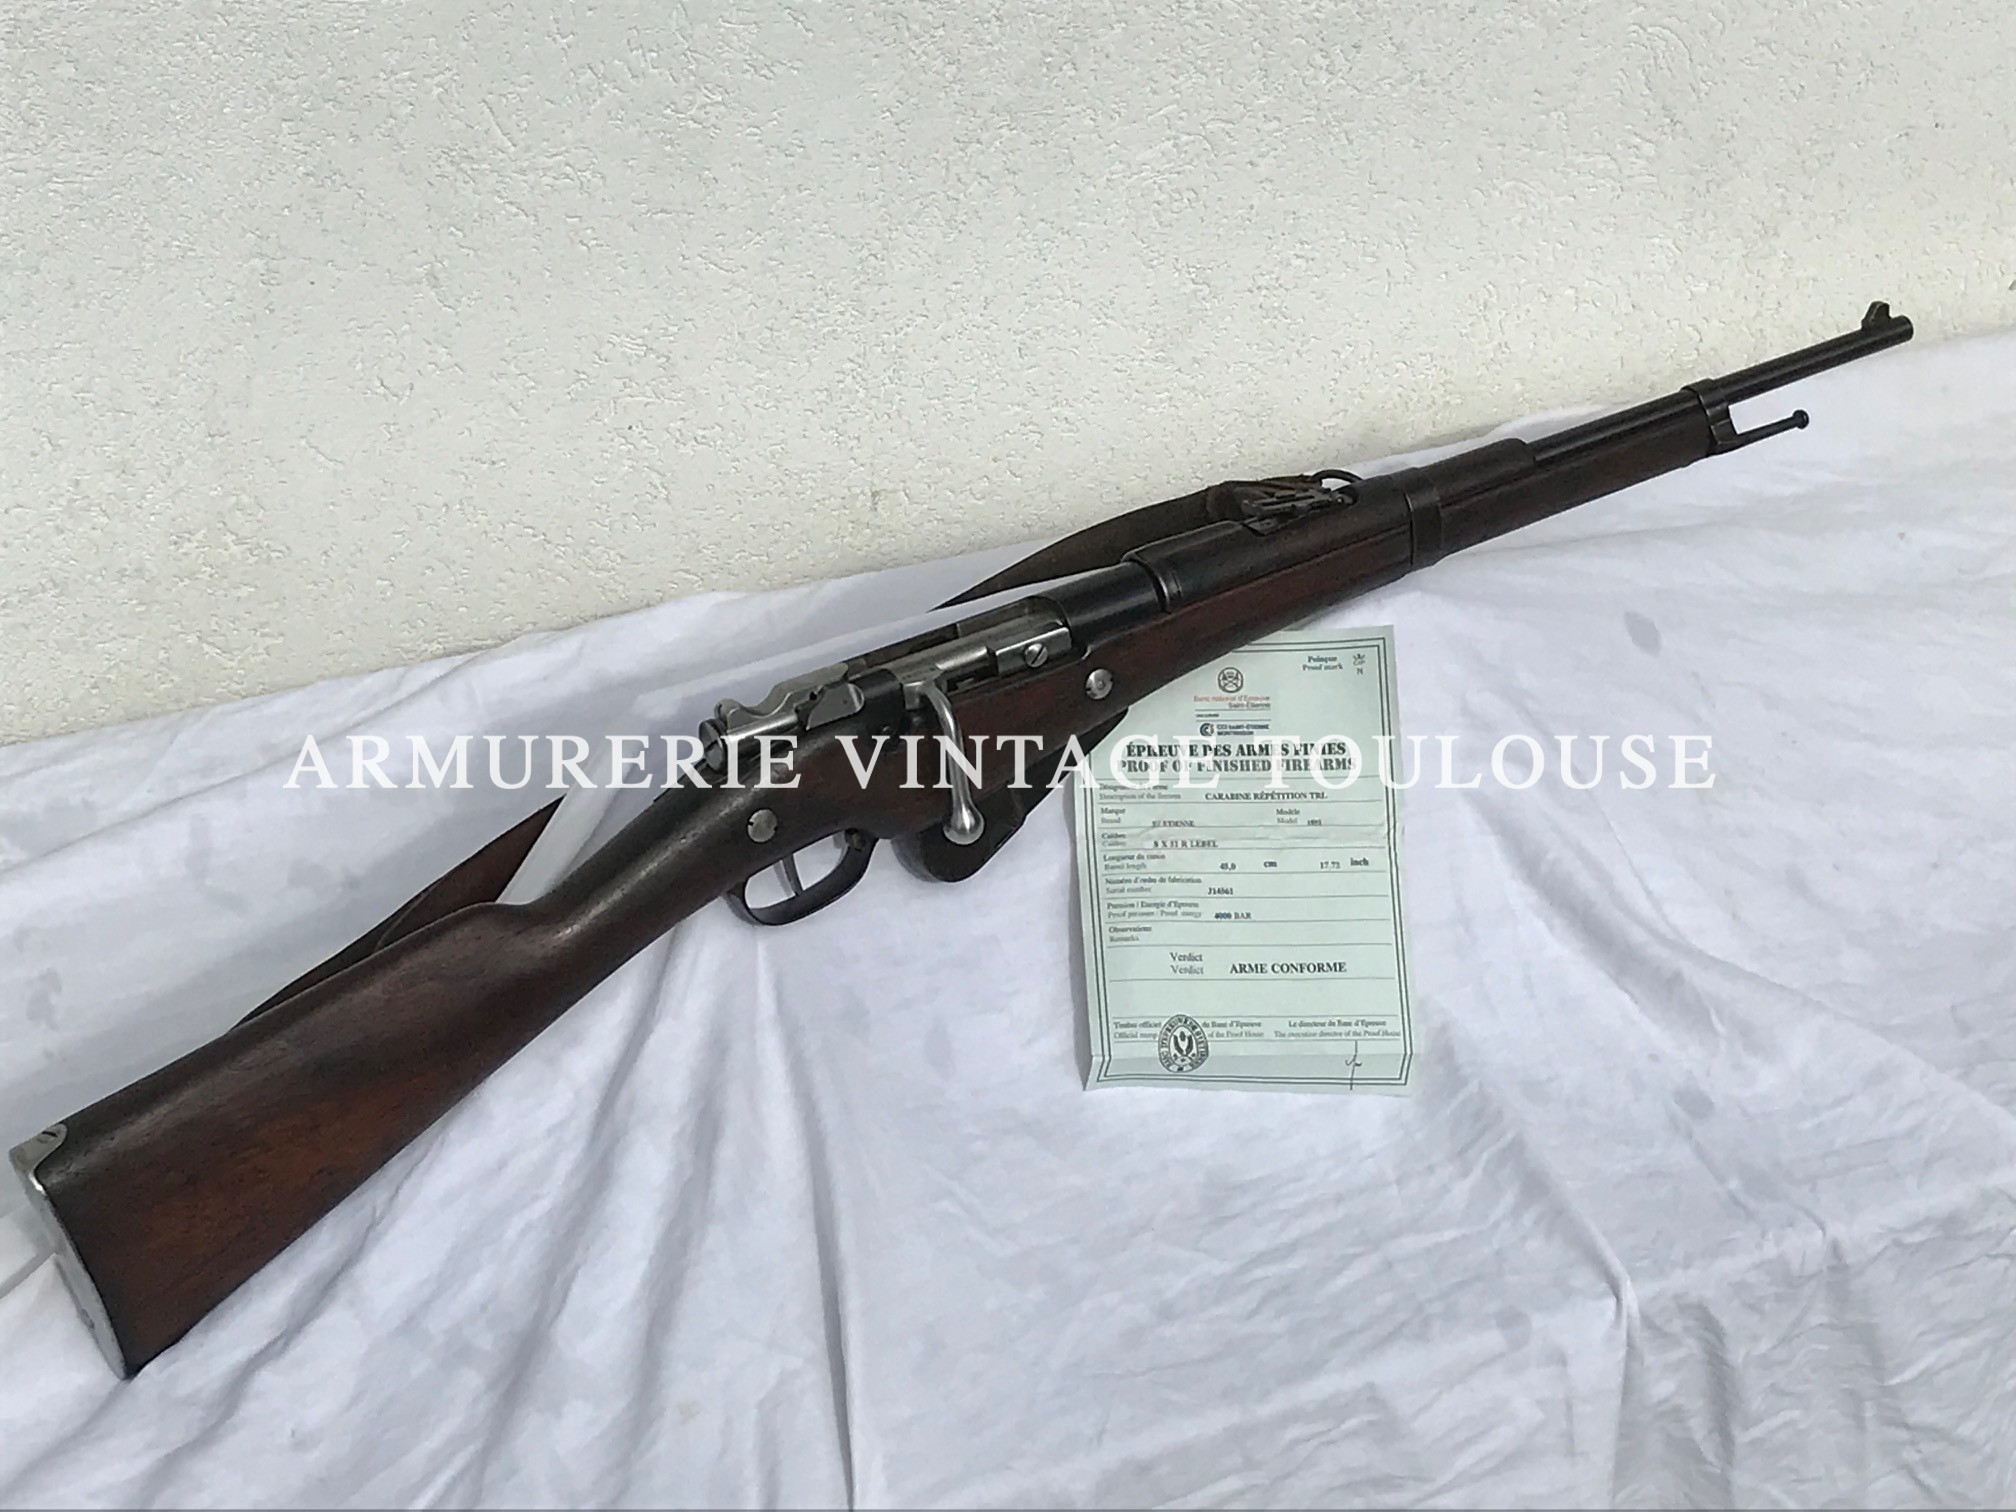 Mousqueton Berthier 1892 version 5 coups calibre 8 mm